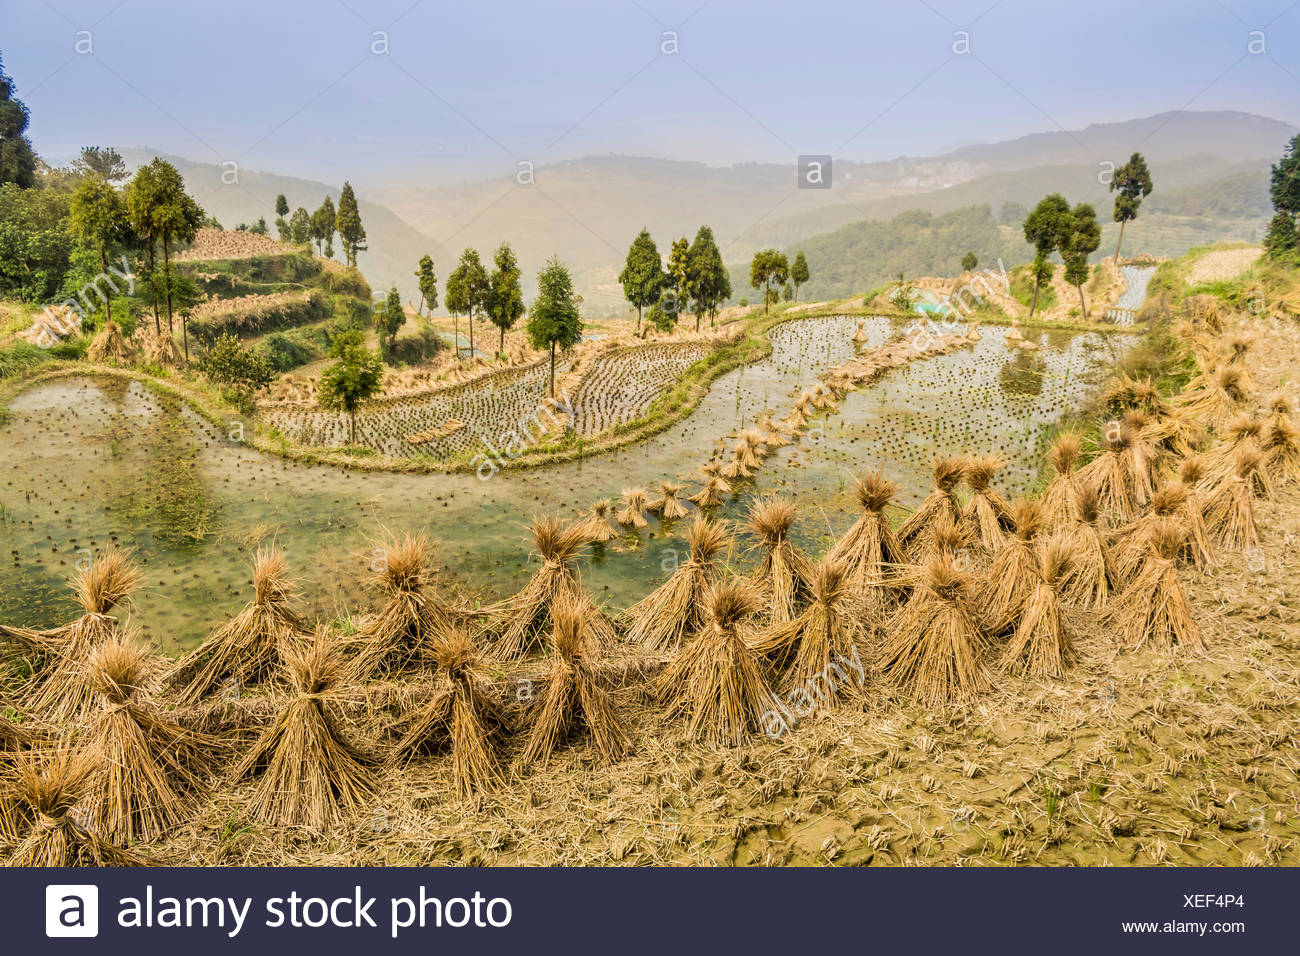 Dried rice bundles waiting to be harvested on paddy fields in Yongjia County. - Stock Image